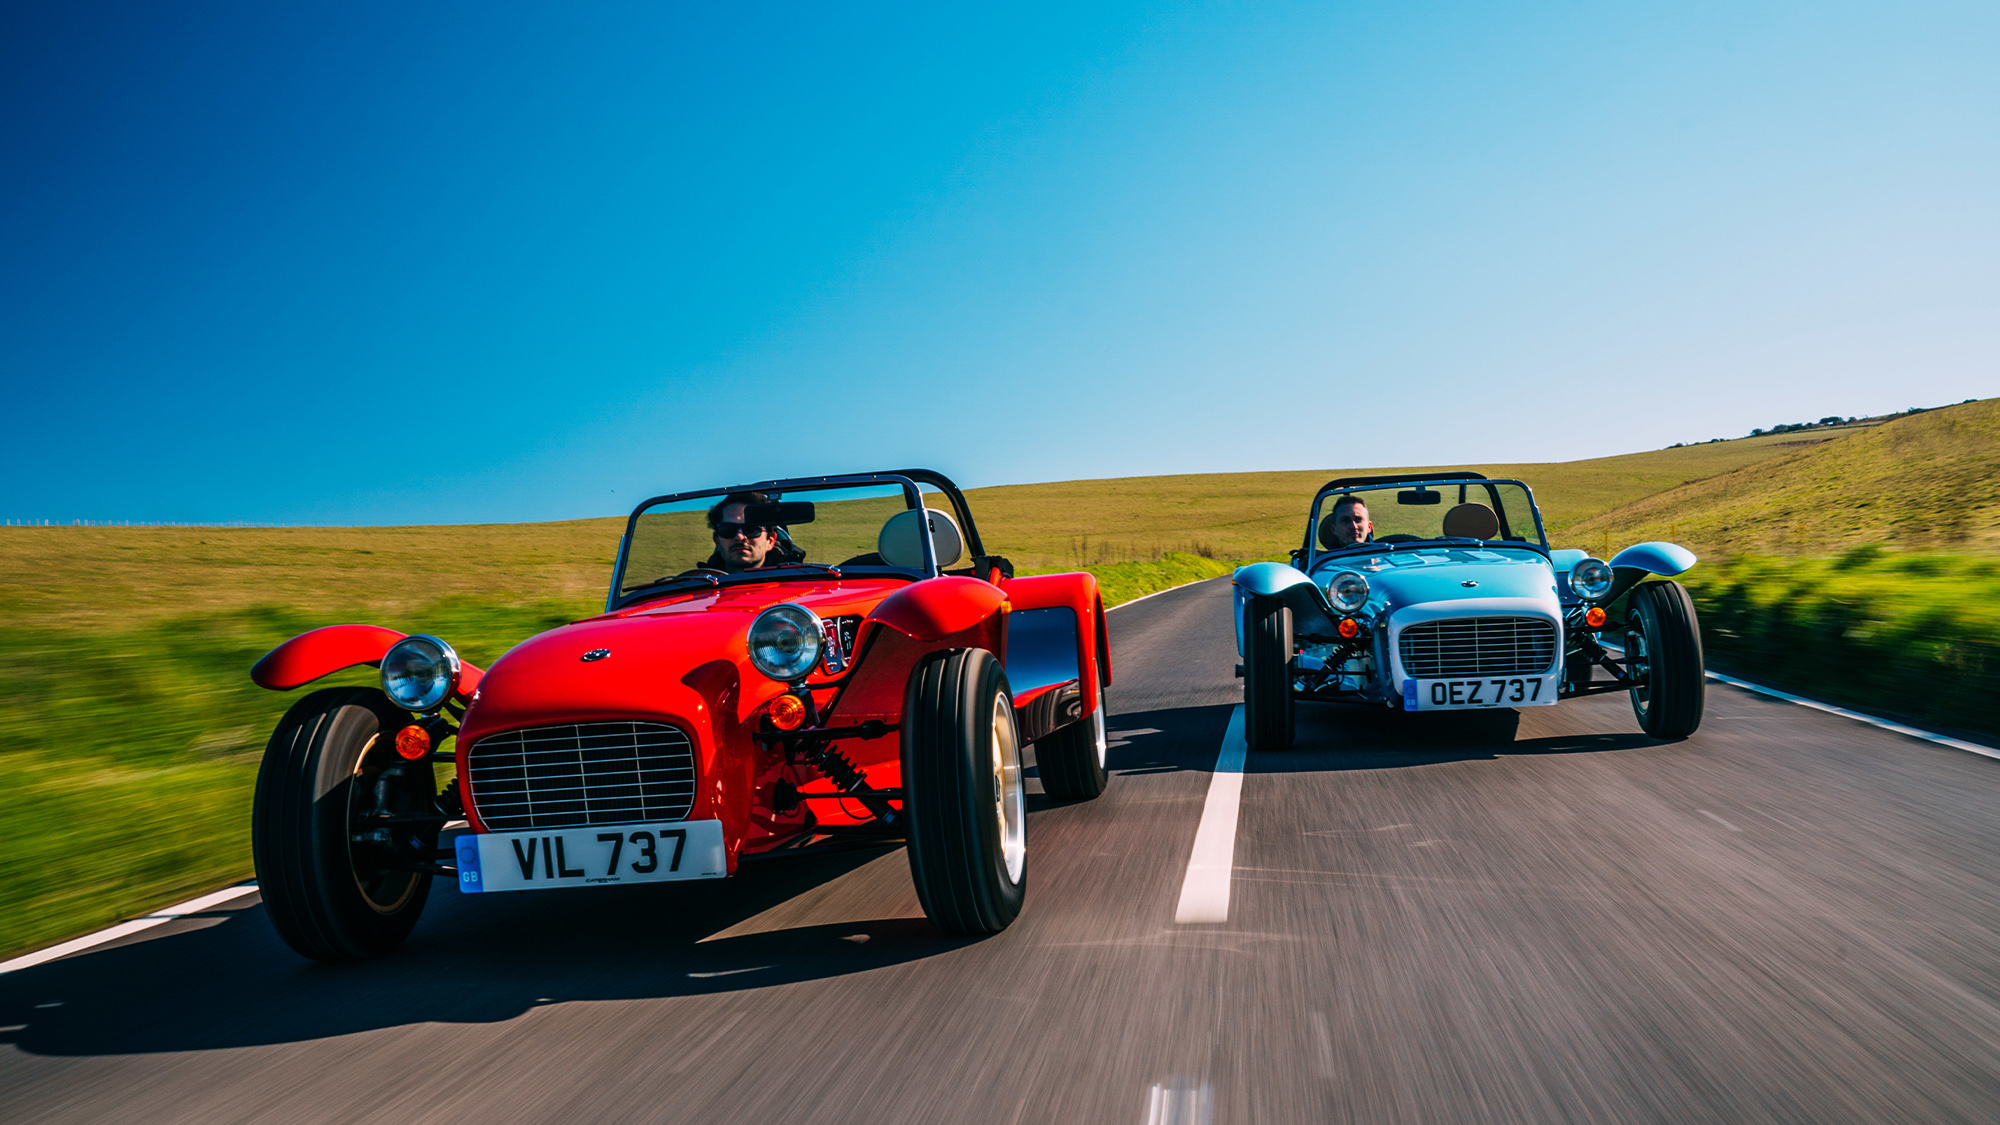 Caterham Super Seven 1600 cars